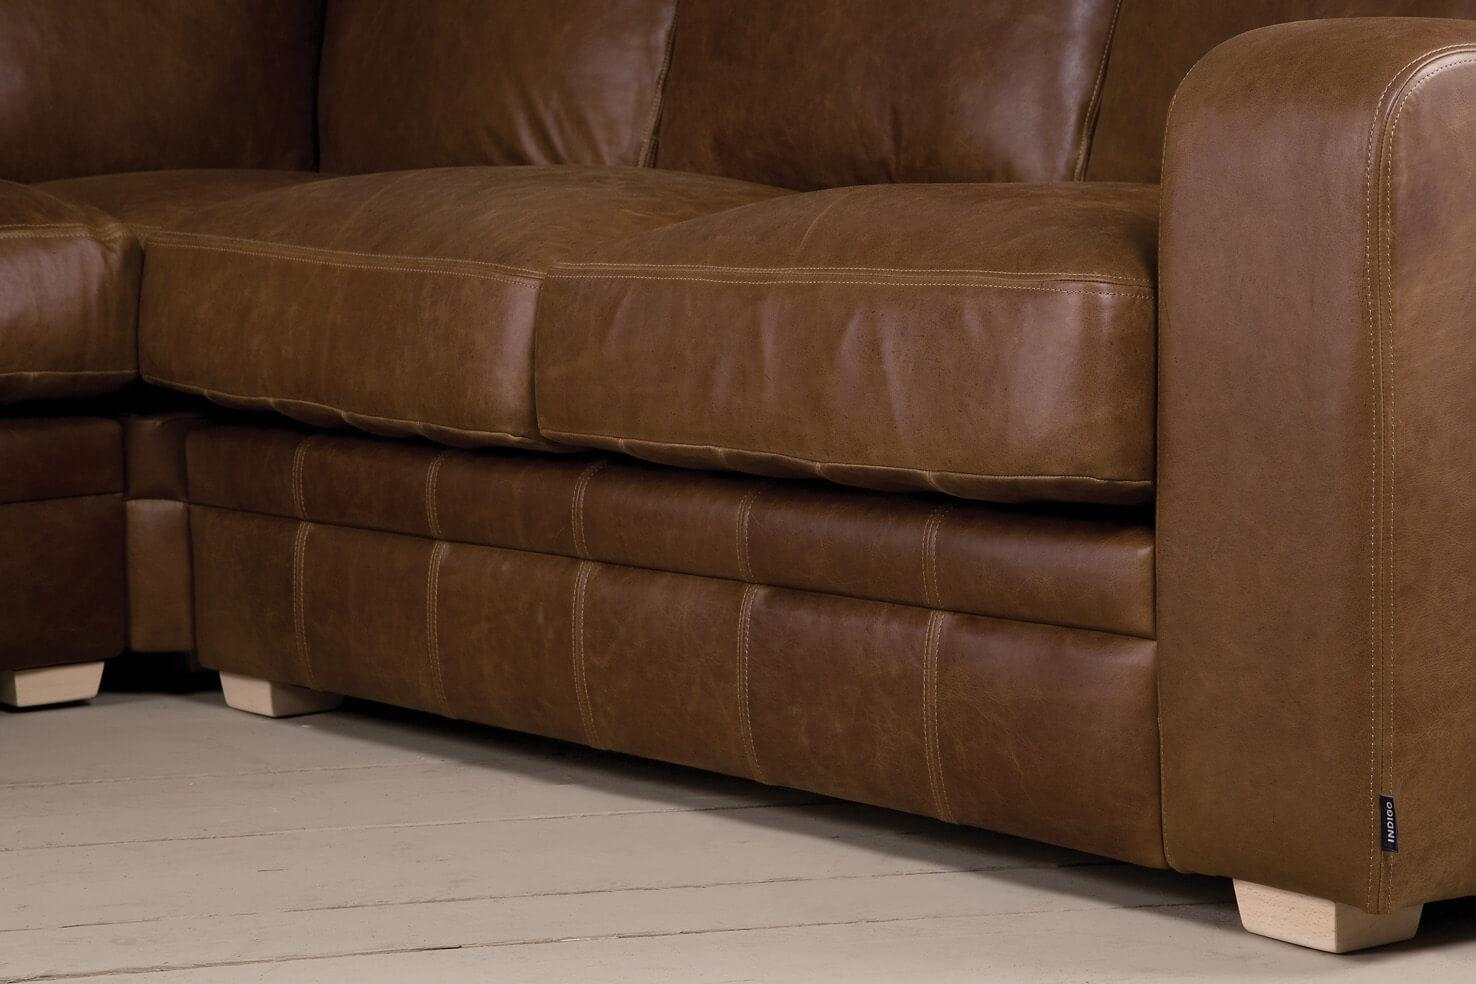 The Square Arm Leather Corner Sofaindigo Furniture Within Corner Sofa Leather (Image 19 of 20)